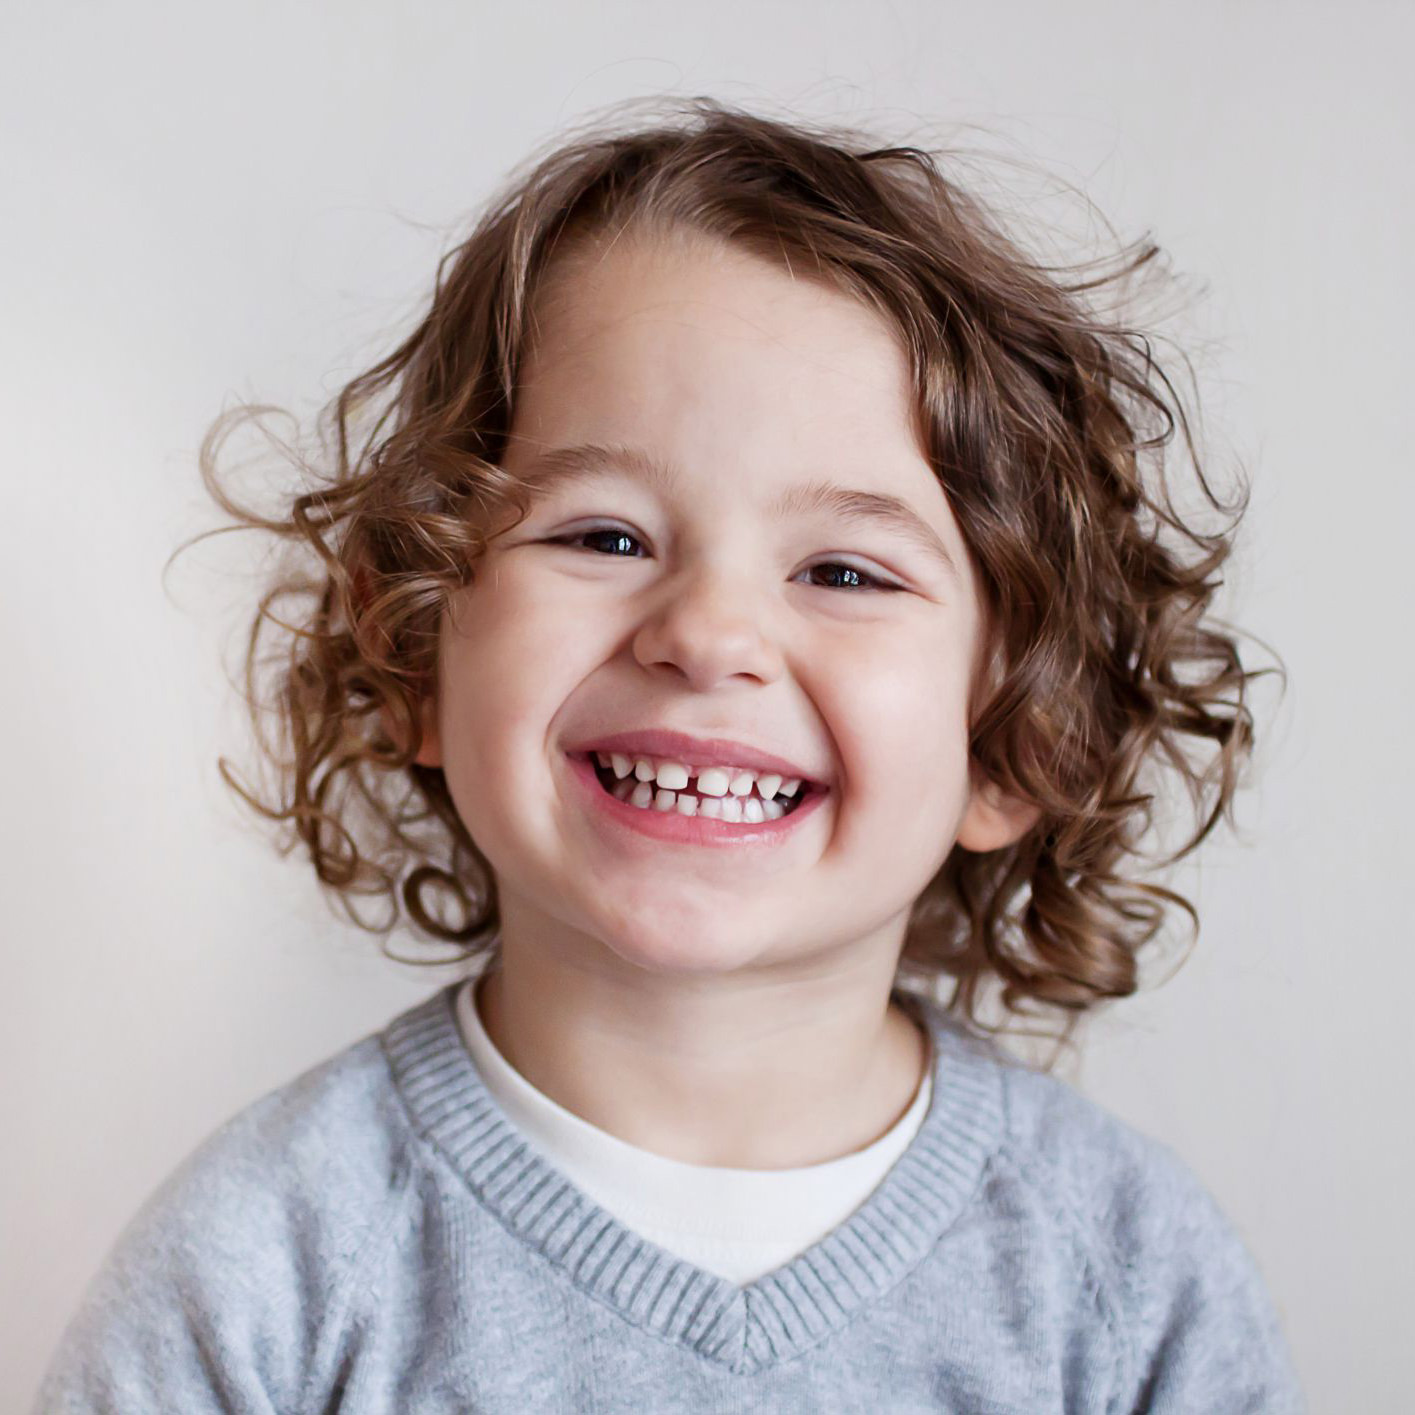 dental services rouse hill family and children's dentistry